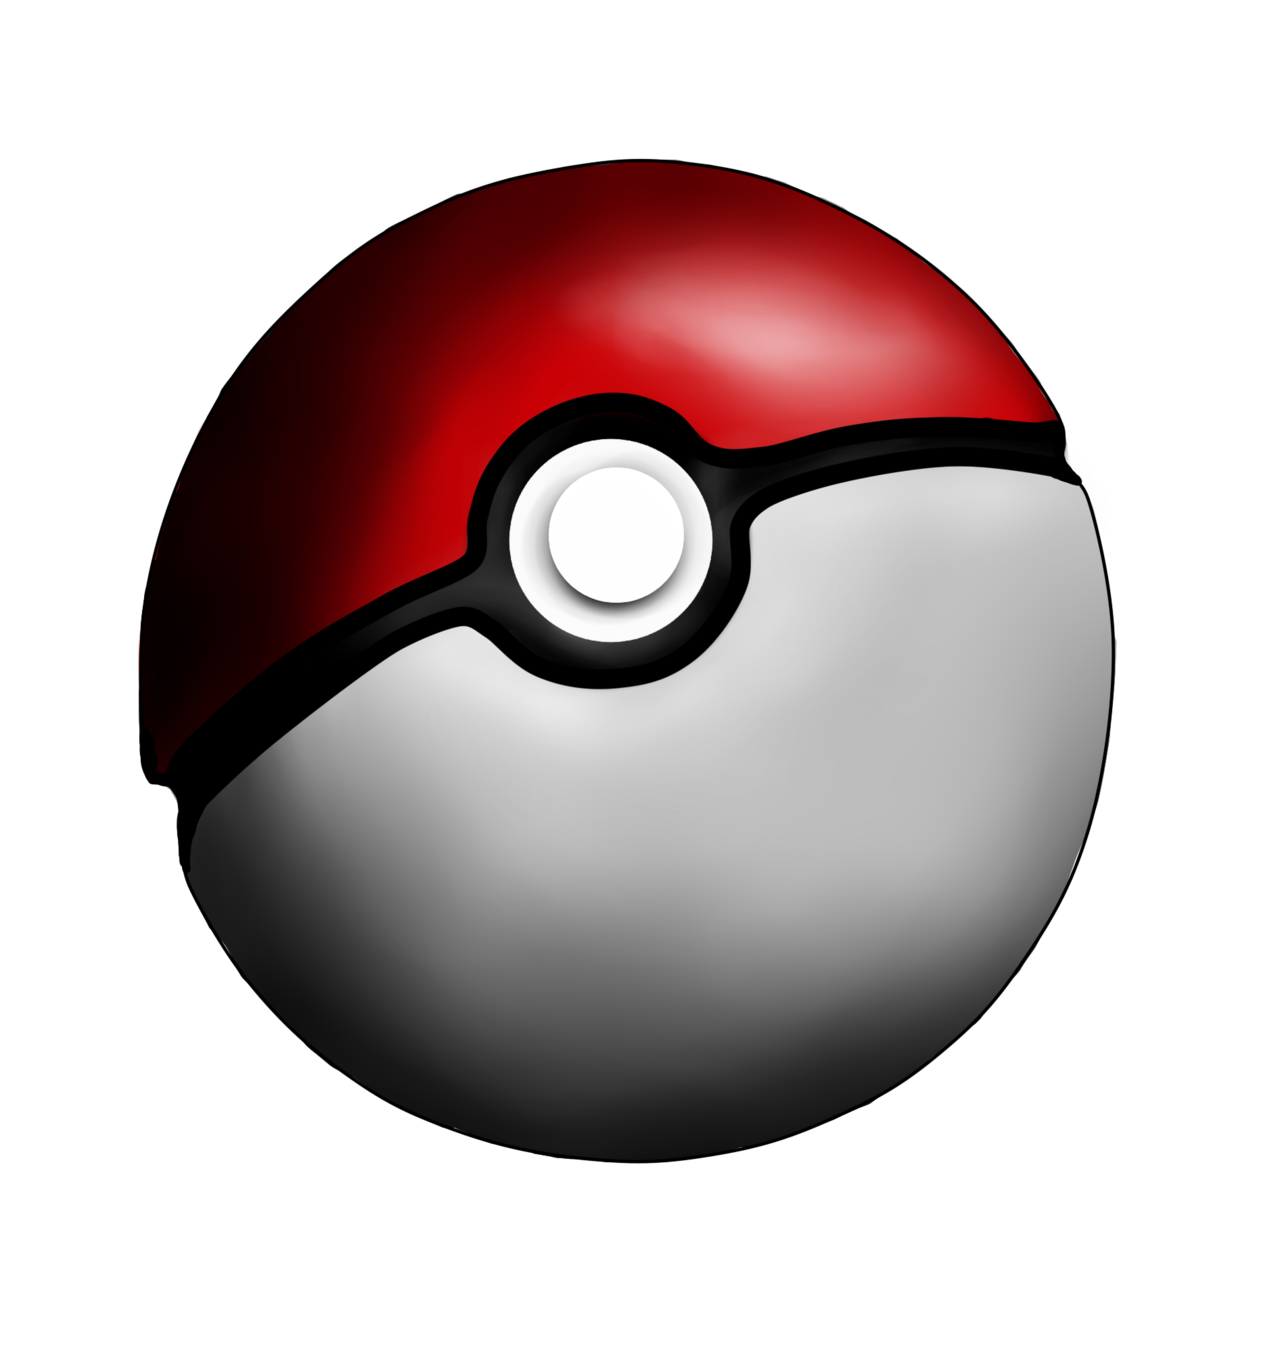 jpg freeuse download Pokeball clipart avatar. Sprite free on dumielauxepices